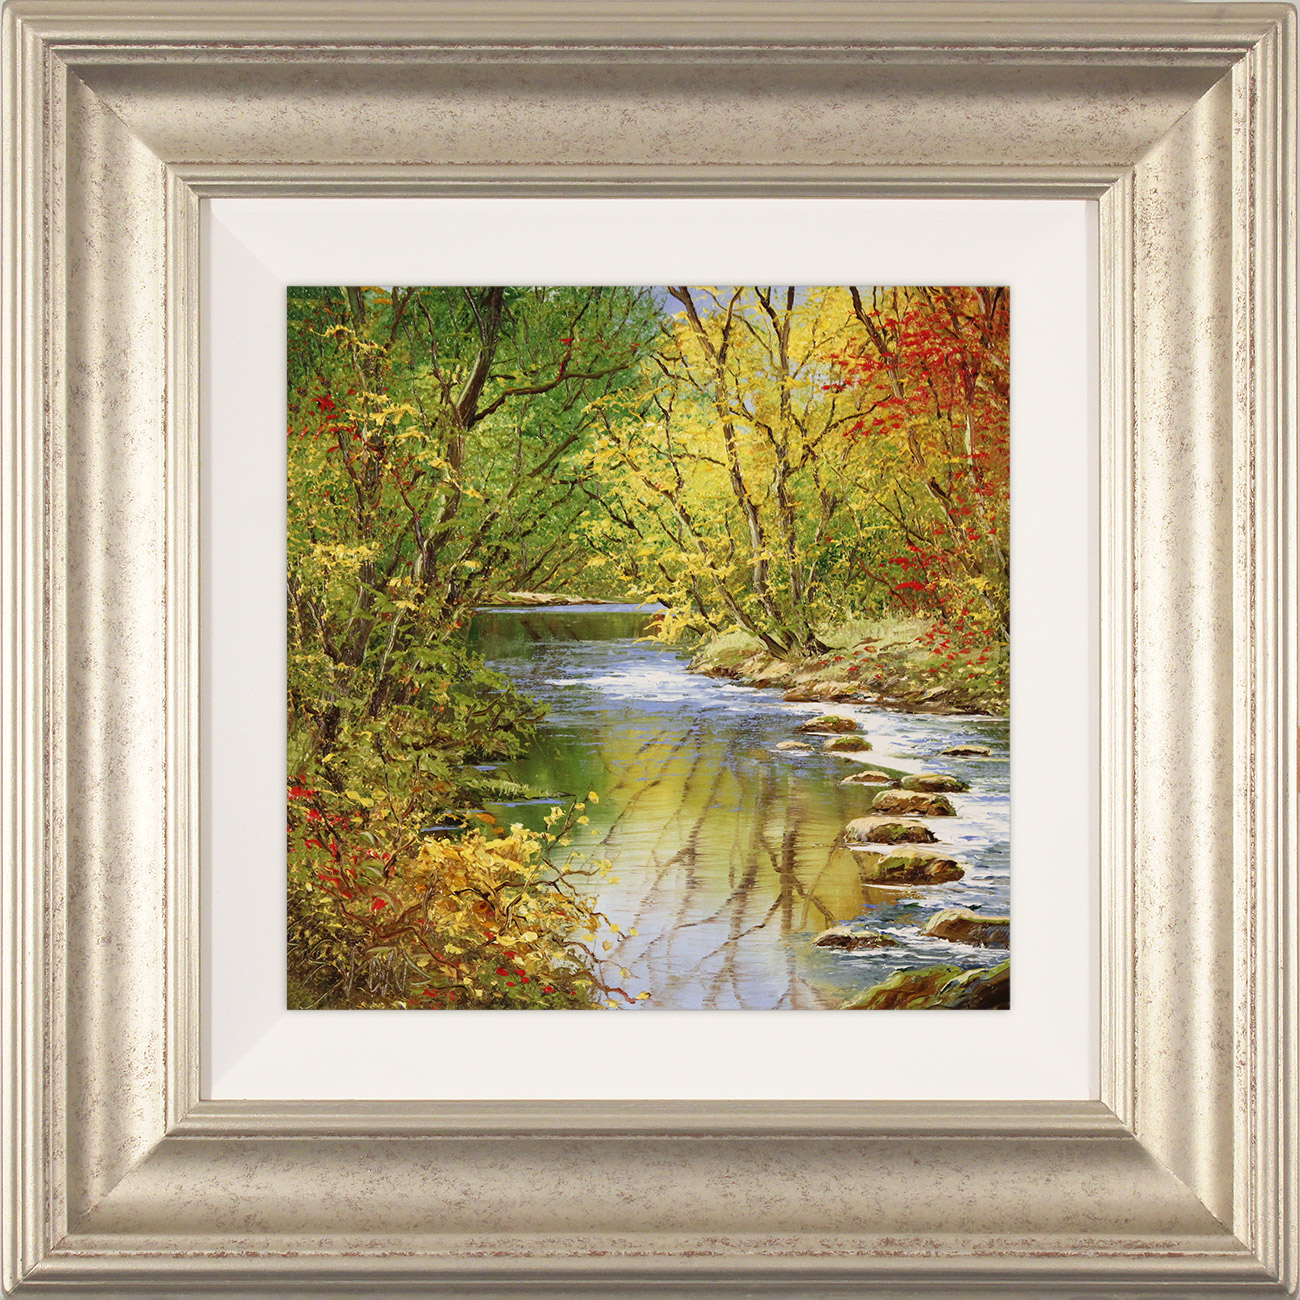 Terry Evans, Original oil painting on canvas, Golden Beck, click to enlarge